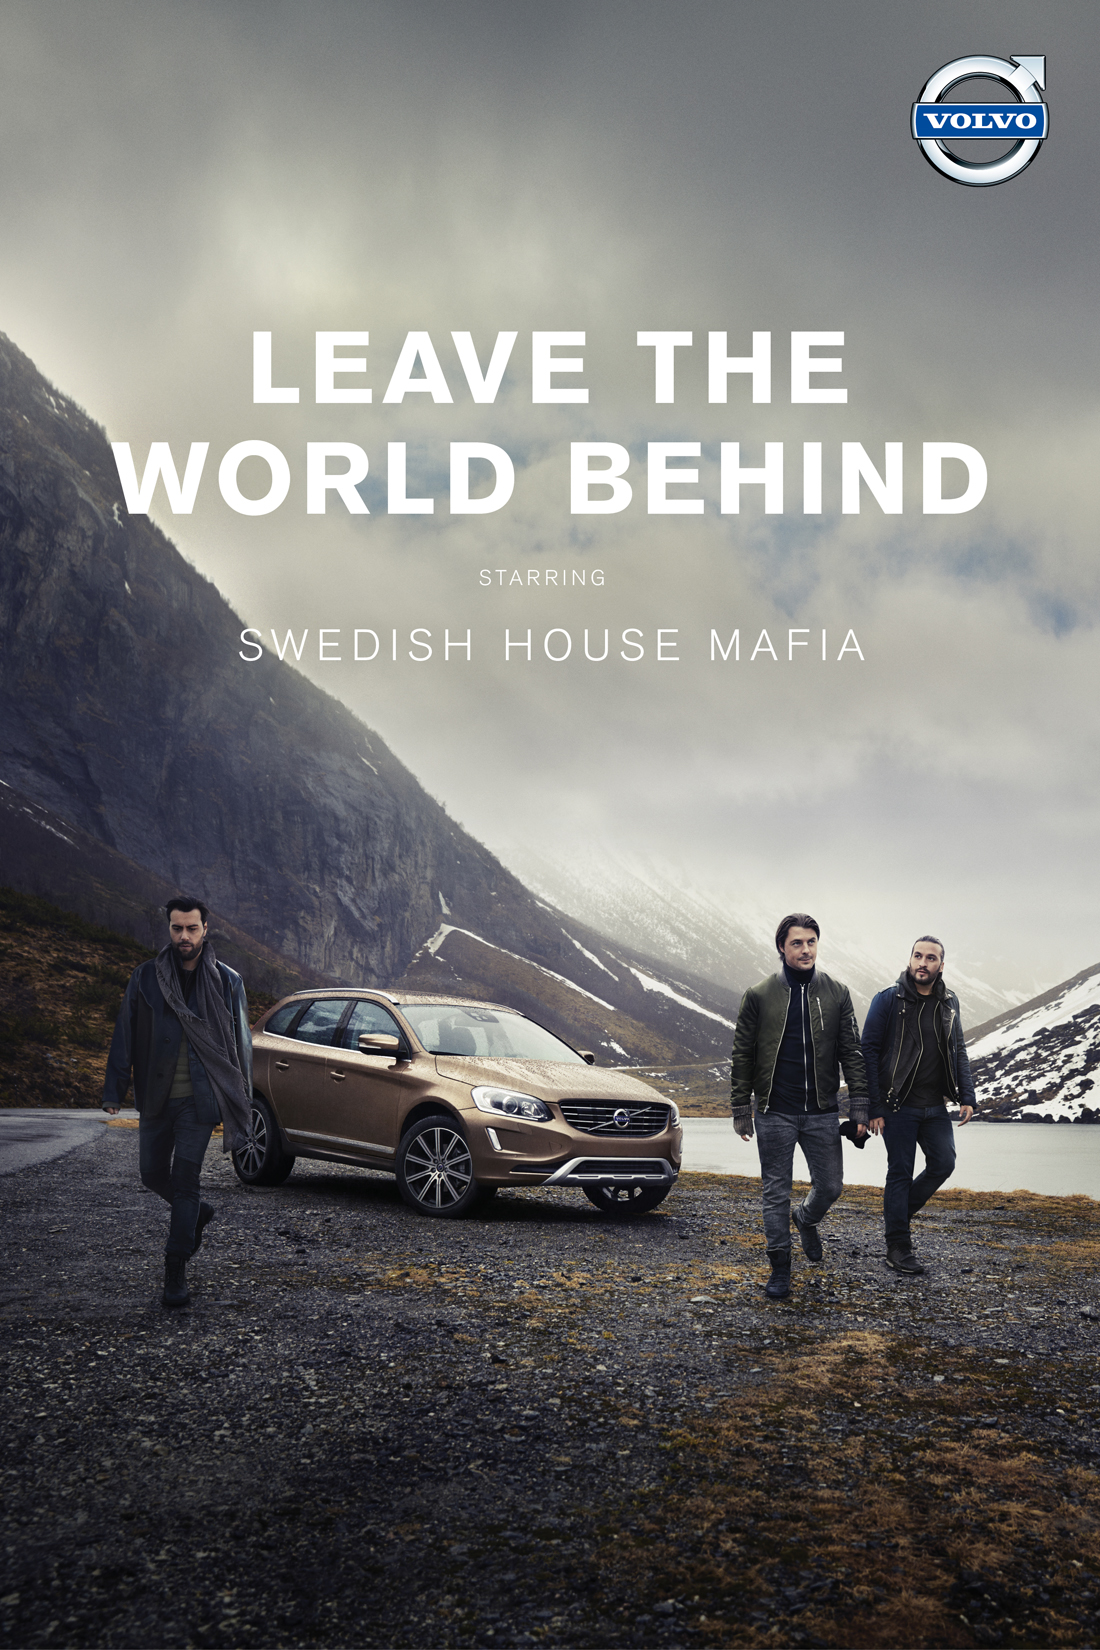 Volvo i Swedish House Mafia saradnja